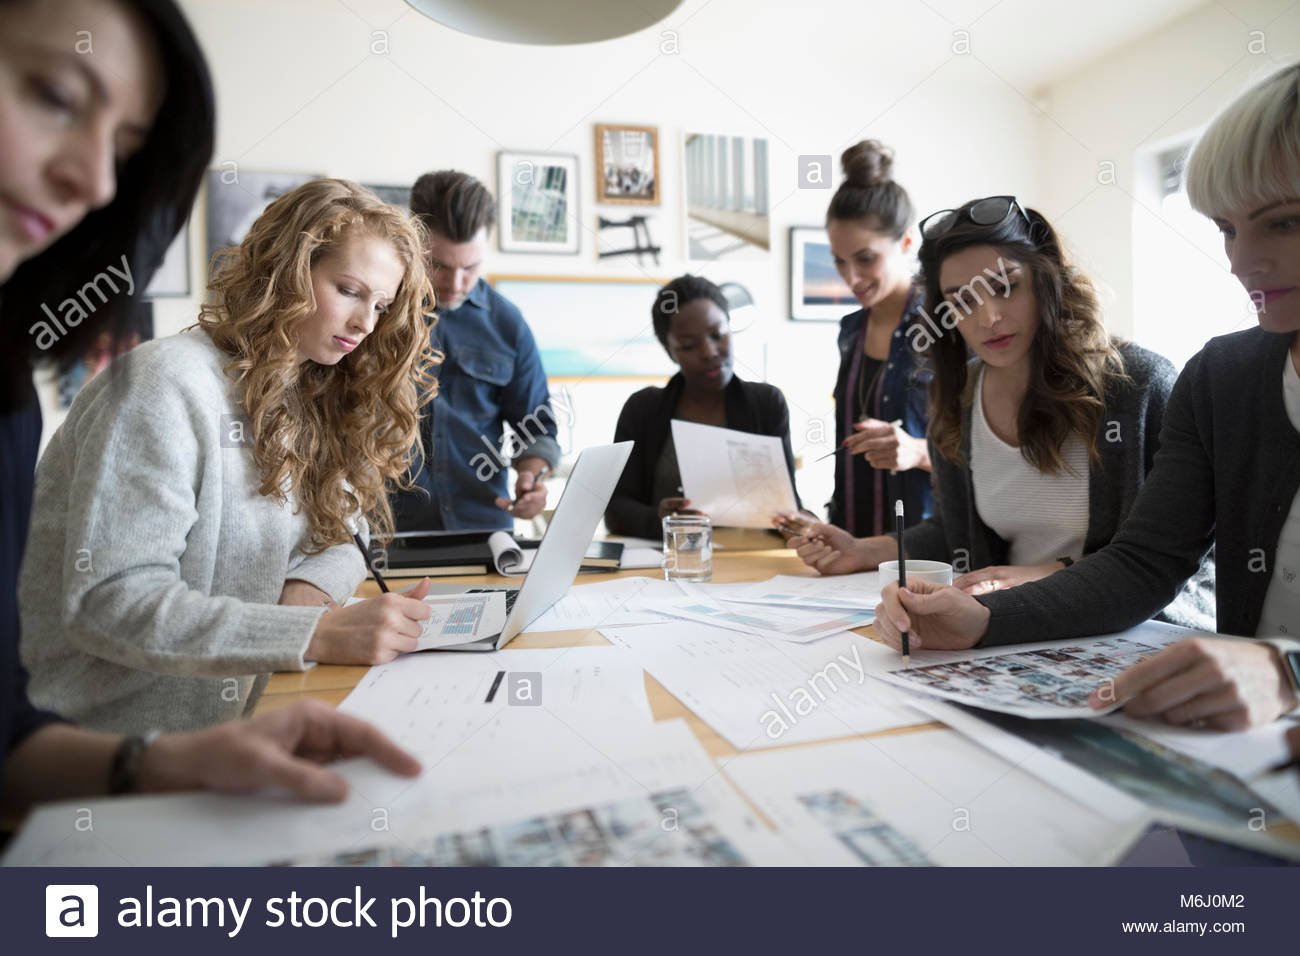 Production team editing photo proofs in office meeting - Stock Image